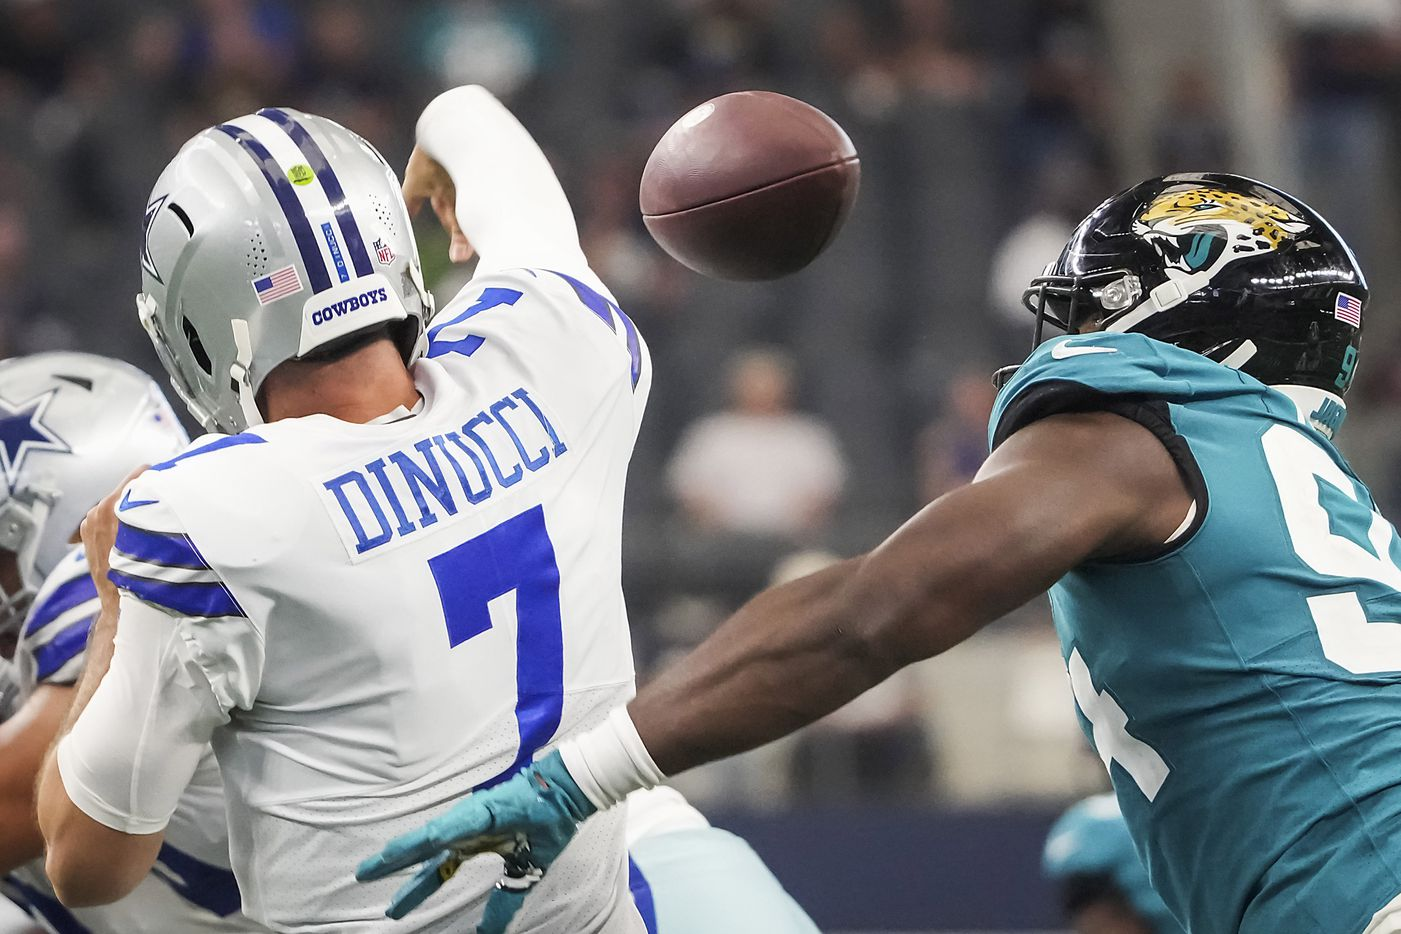 Dallas Cowboys quarterback Ben DiNucci (7) fumbles as he is hit by Jacksonville Jaguars defensive end Aaron Patrick (94) during the second half of a preseason NFL football game at AT&T Stadium on Sunday, Aug. 29, 2021, in Arlington. (Smiley N. Pool/The Dallas Morning News)